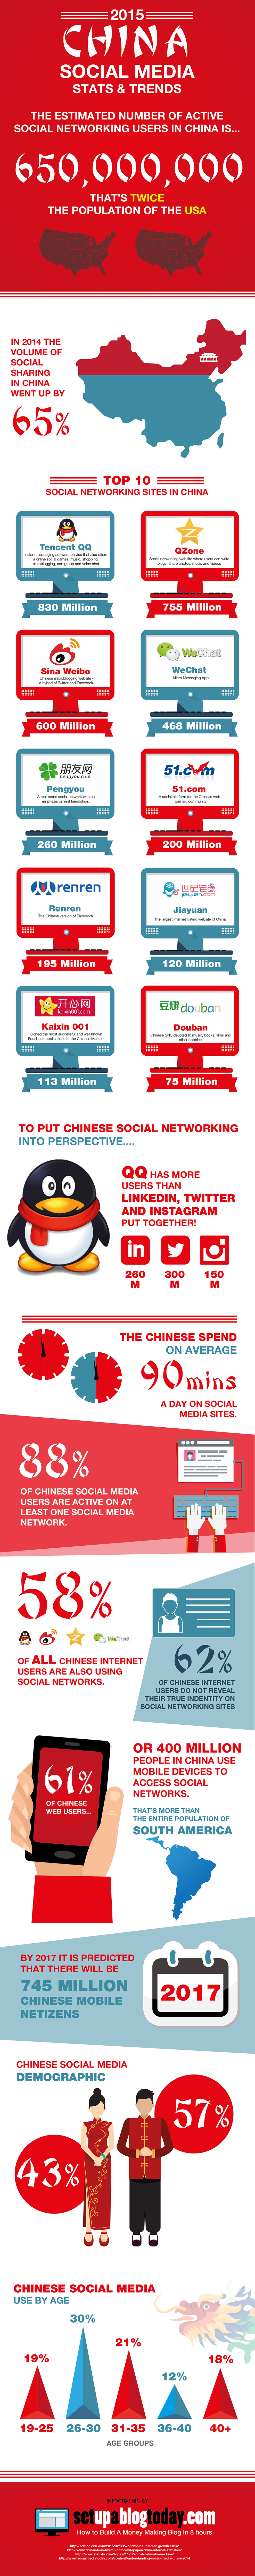 2015 Chinese Social Media Stats & Trends